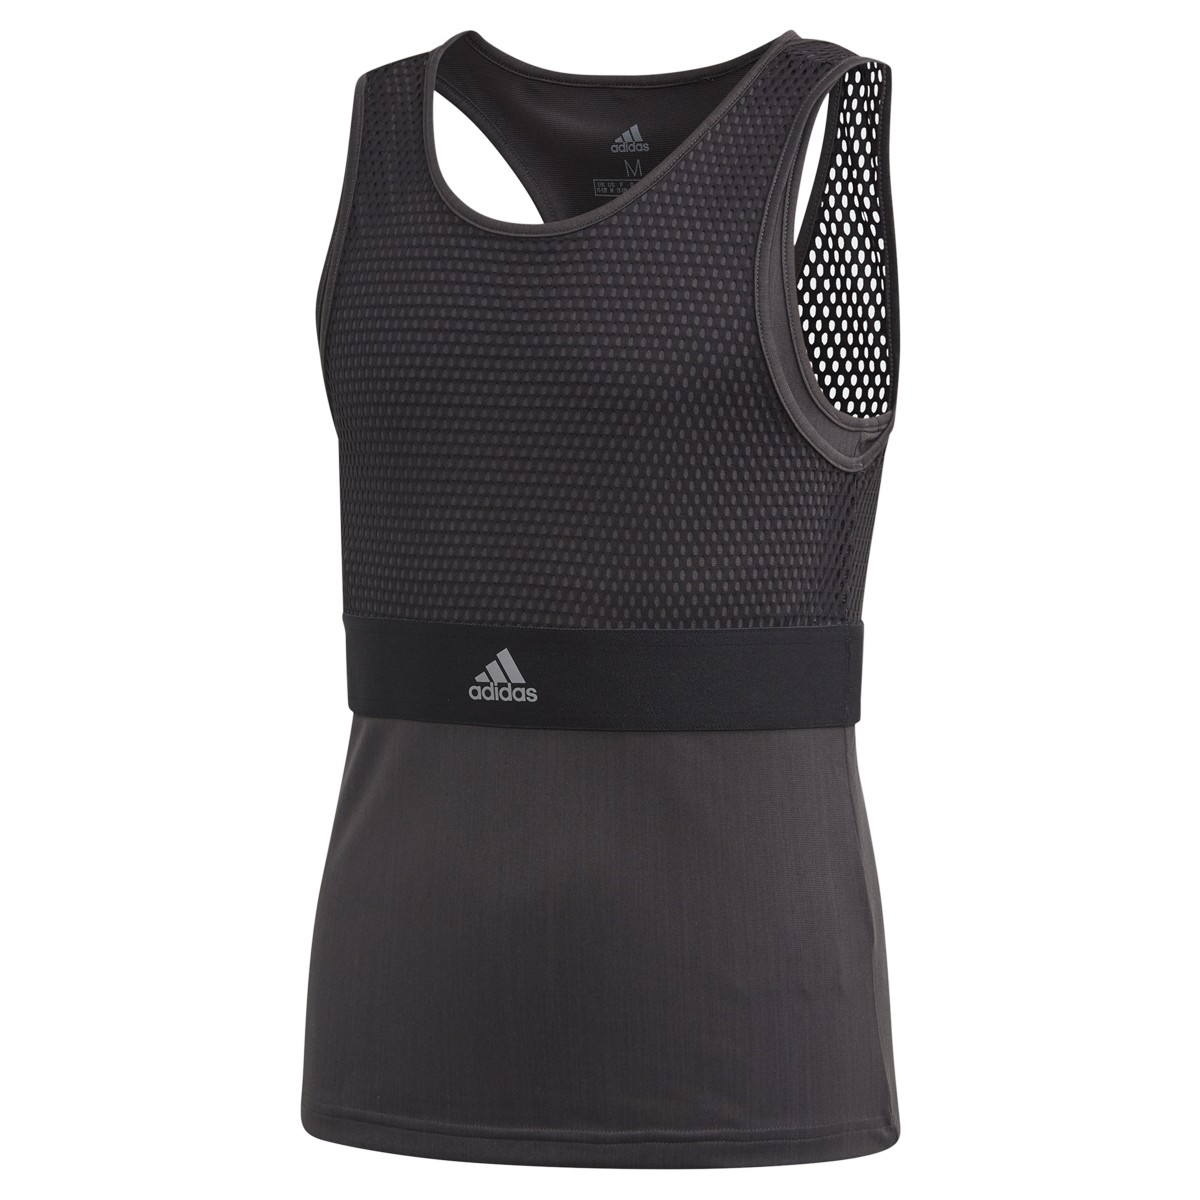 DEBARDEUR ADIDAS JUNIOR NEW YORK